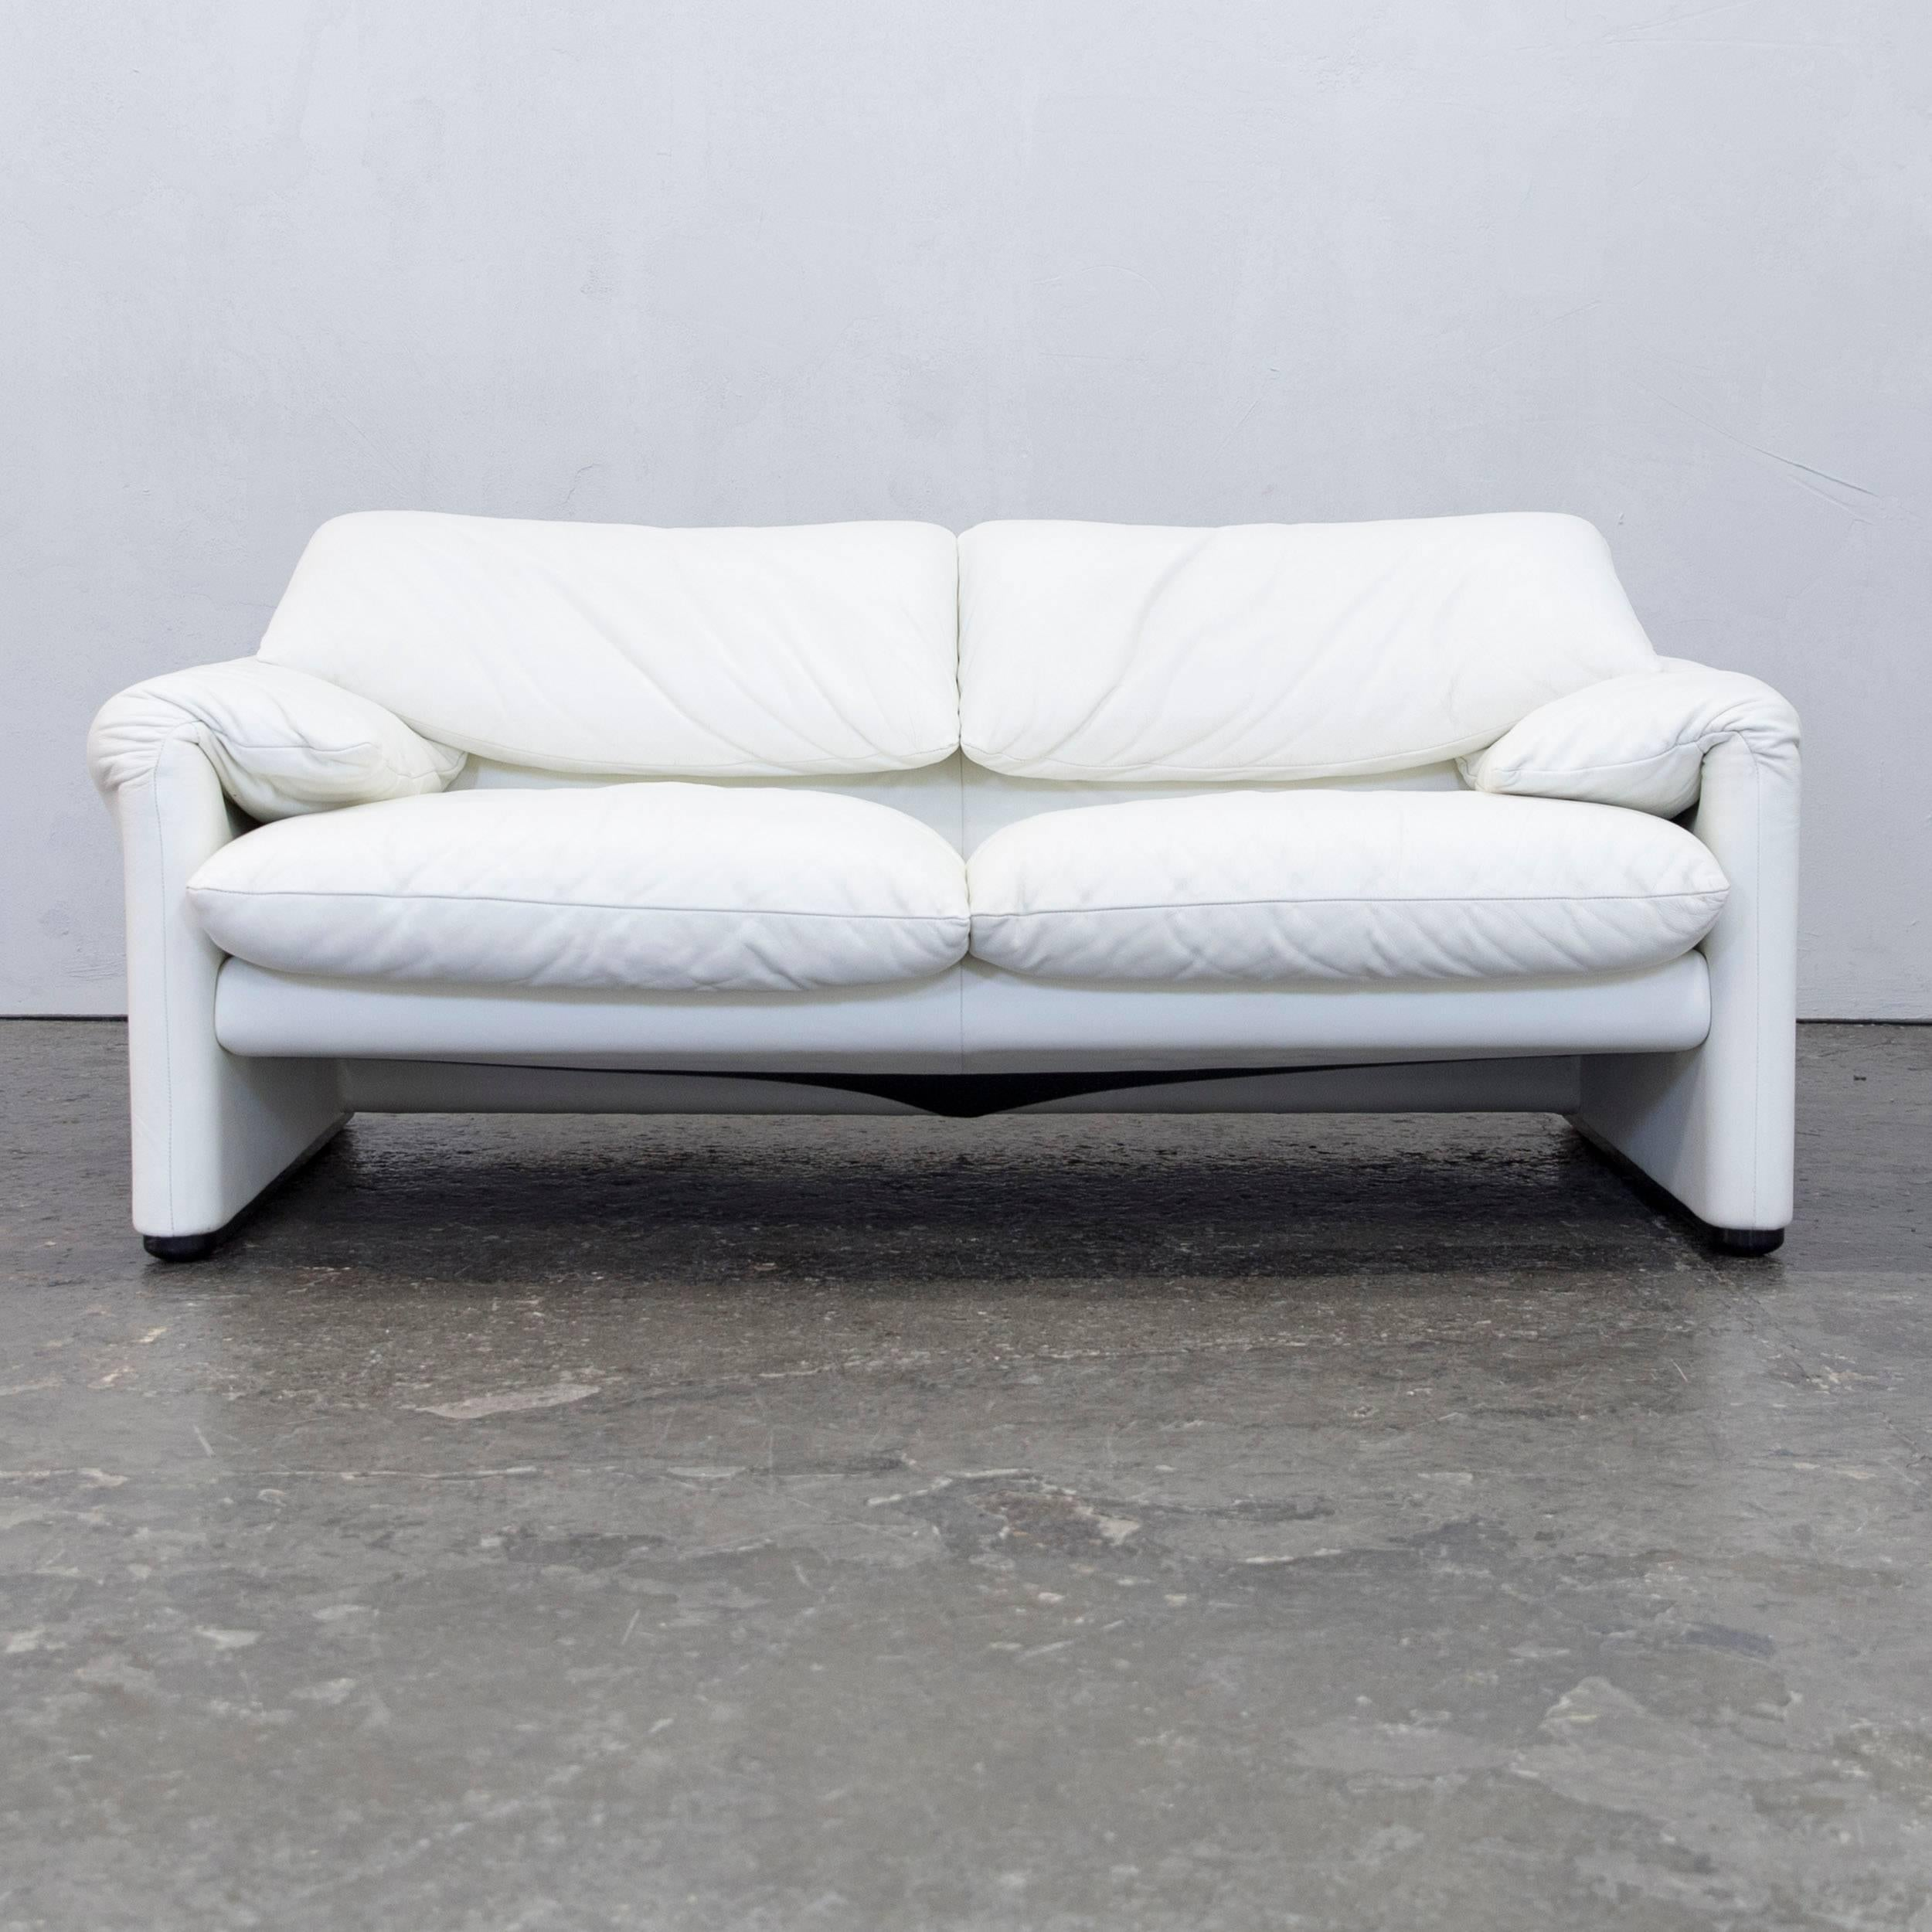 Leder Wei. Excellent Gallery Of Large Size Of Sofa Sitzer Leder ...